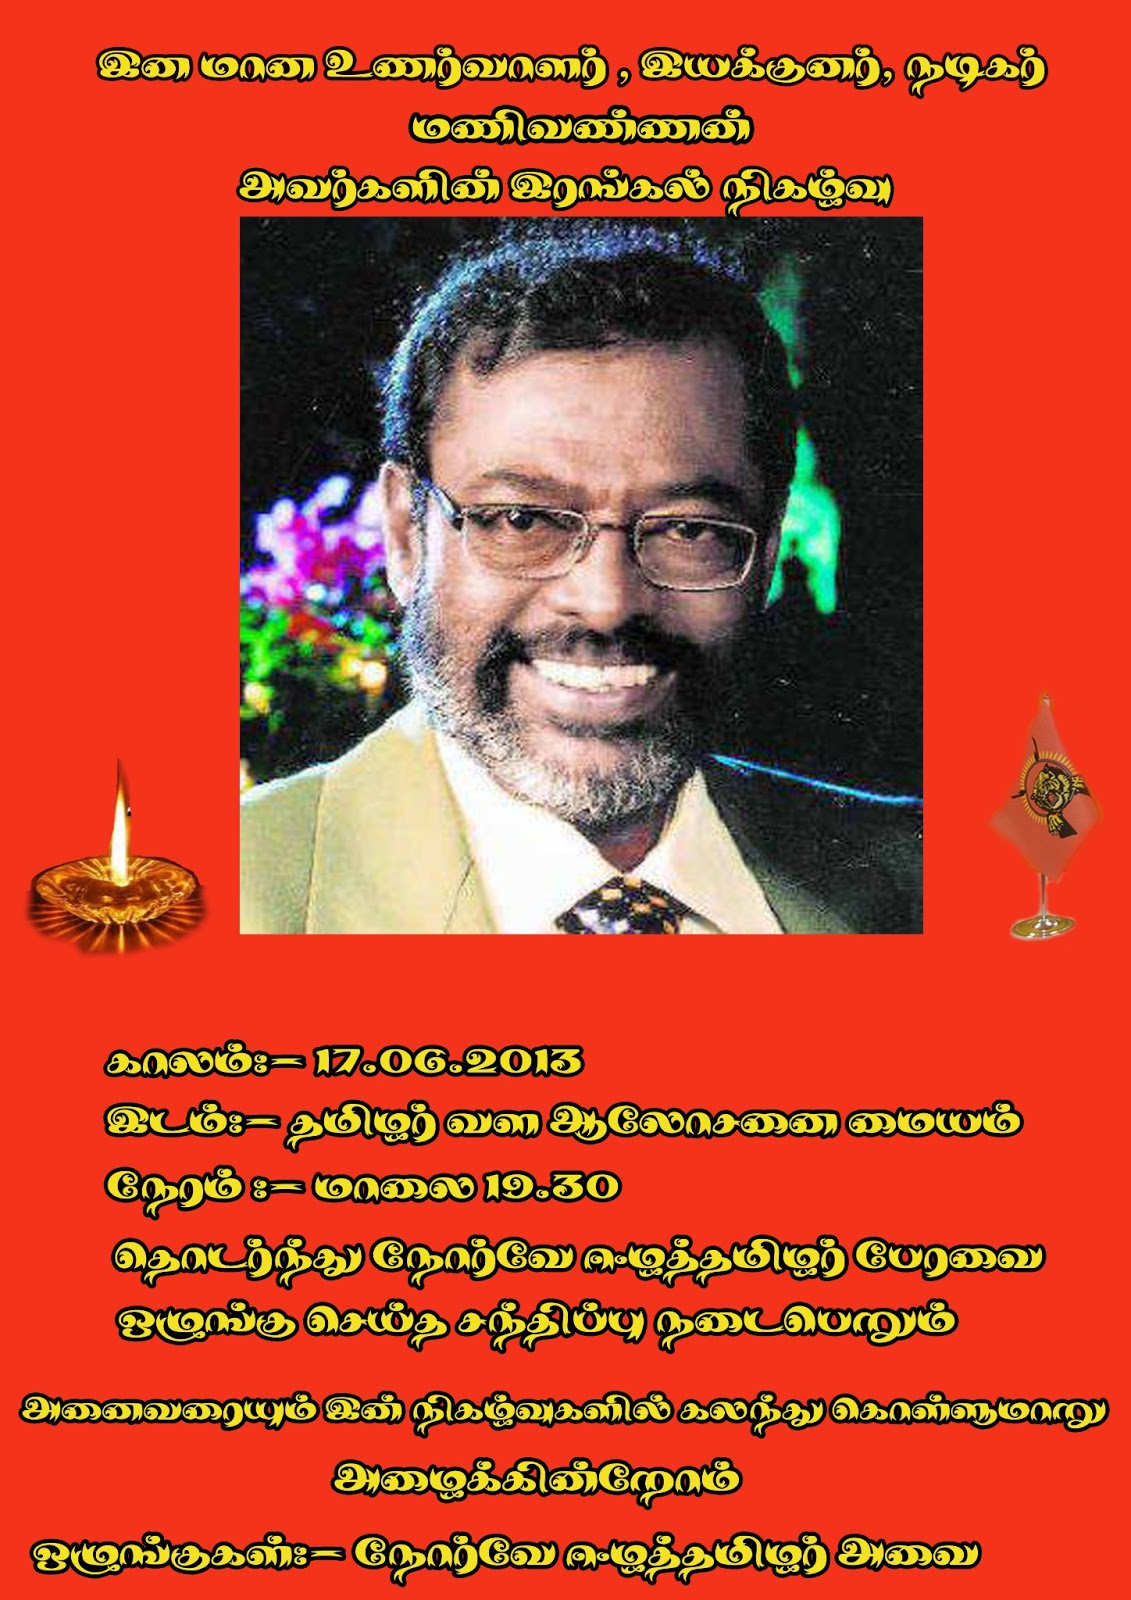 manivannan deathmanivannan caste, manivannan p, manivannan wiki, manivannan death, manivannan movies, manivannan comedy, manivannan movie list, manivannan songs, manivannan gana songs, manivannan family photos, manivannan ias wiki, manivannan wife death, manivannan hits, manivannan mani, manivannan director caste, manivannan director movie list, manivannan son